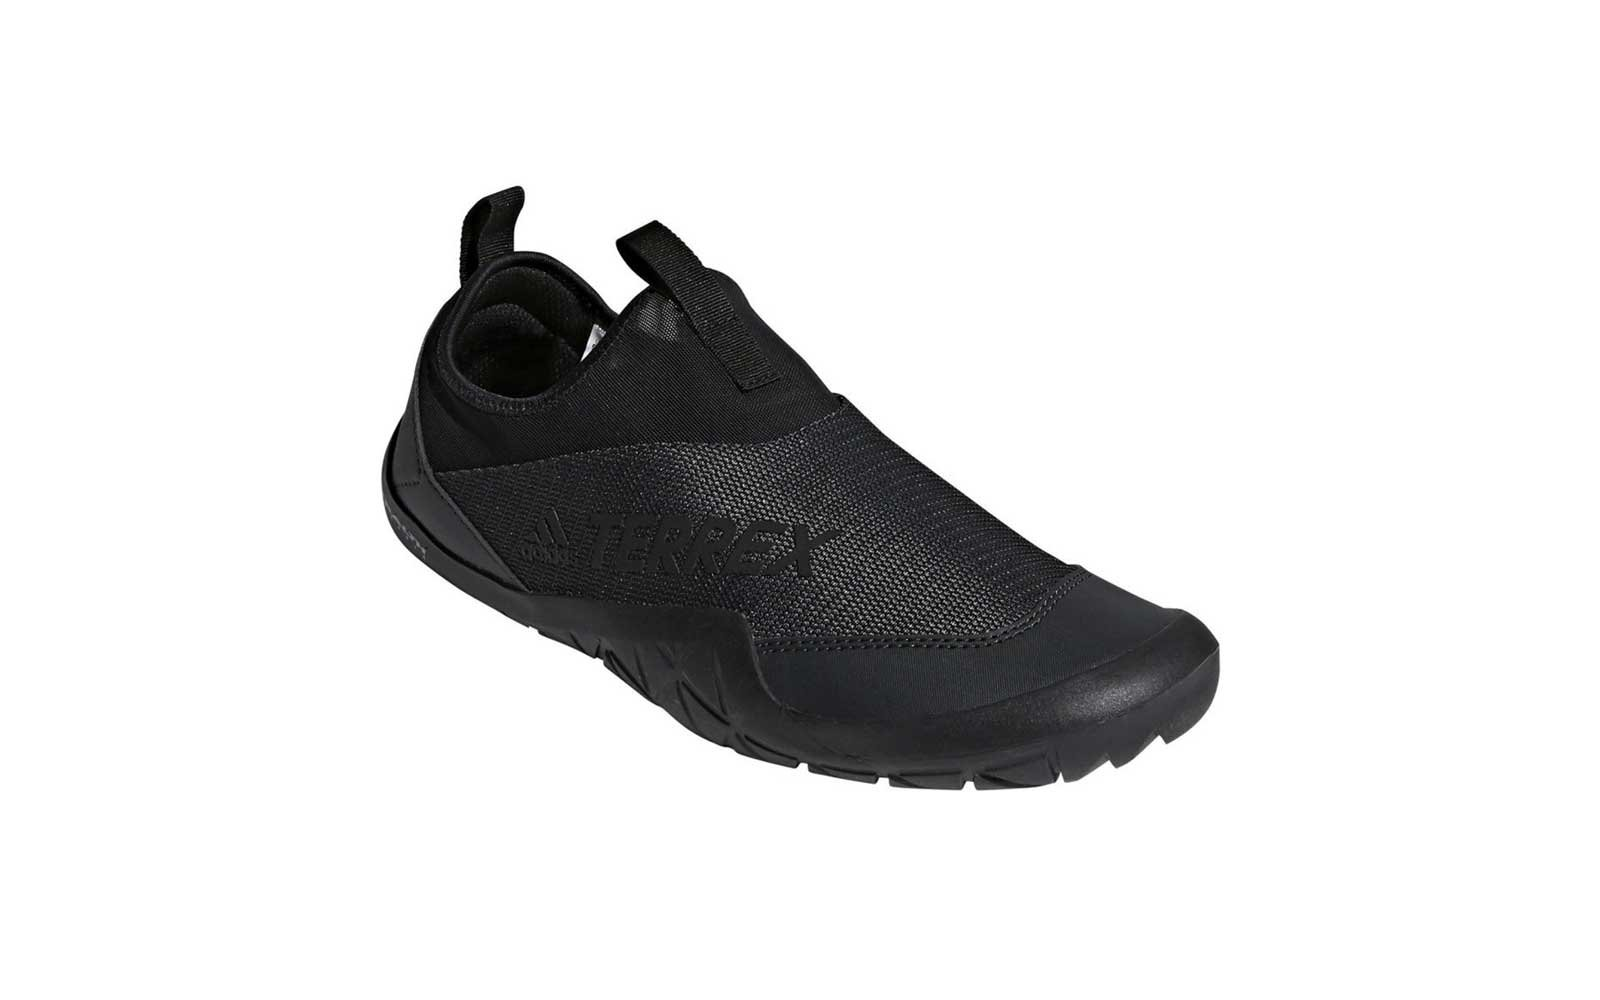 79285712f120 The Best Men s Water Shoes for 2019